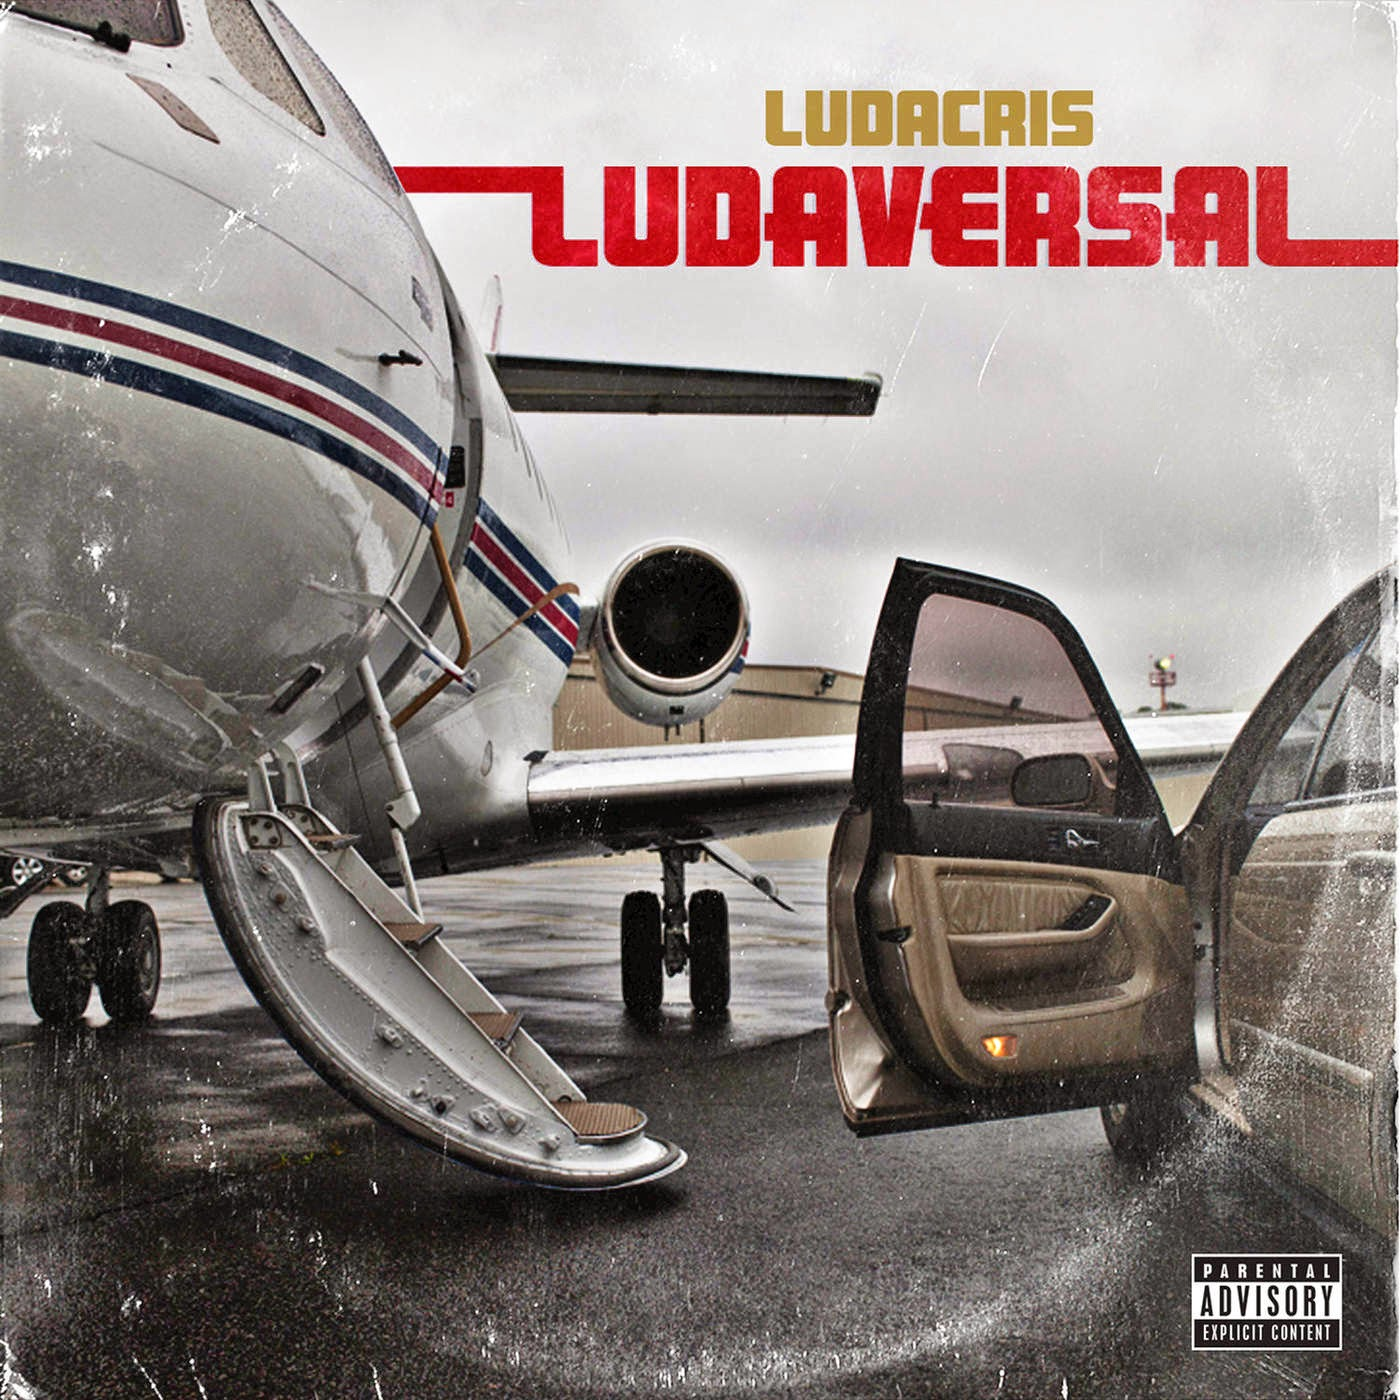 If you place your cursor over this, you just discovered my little gift to you. The album Ludaversal in a zip folder. You're welcome internet.